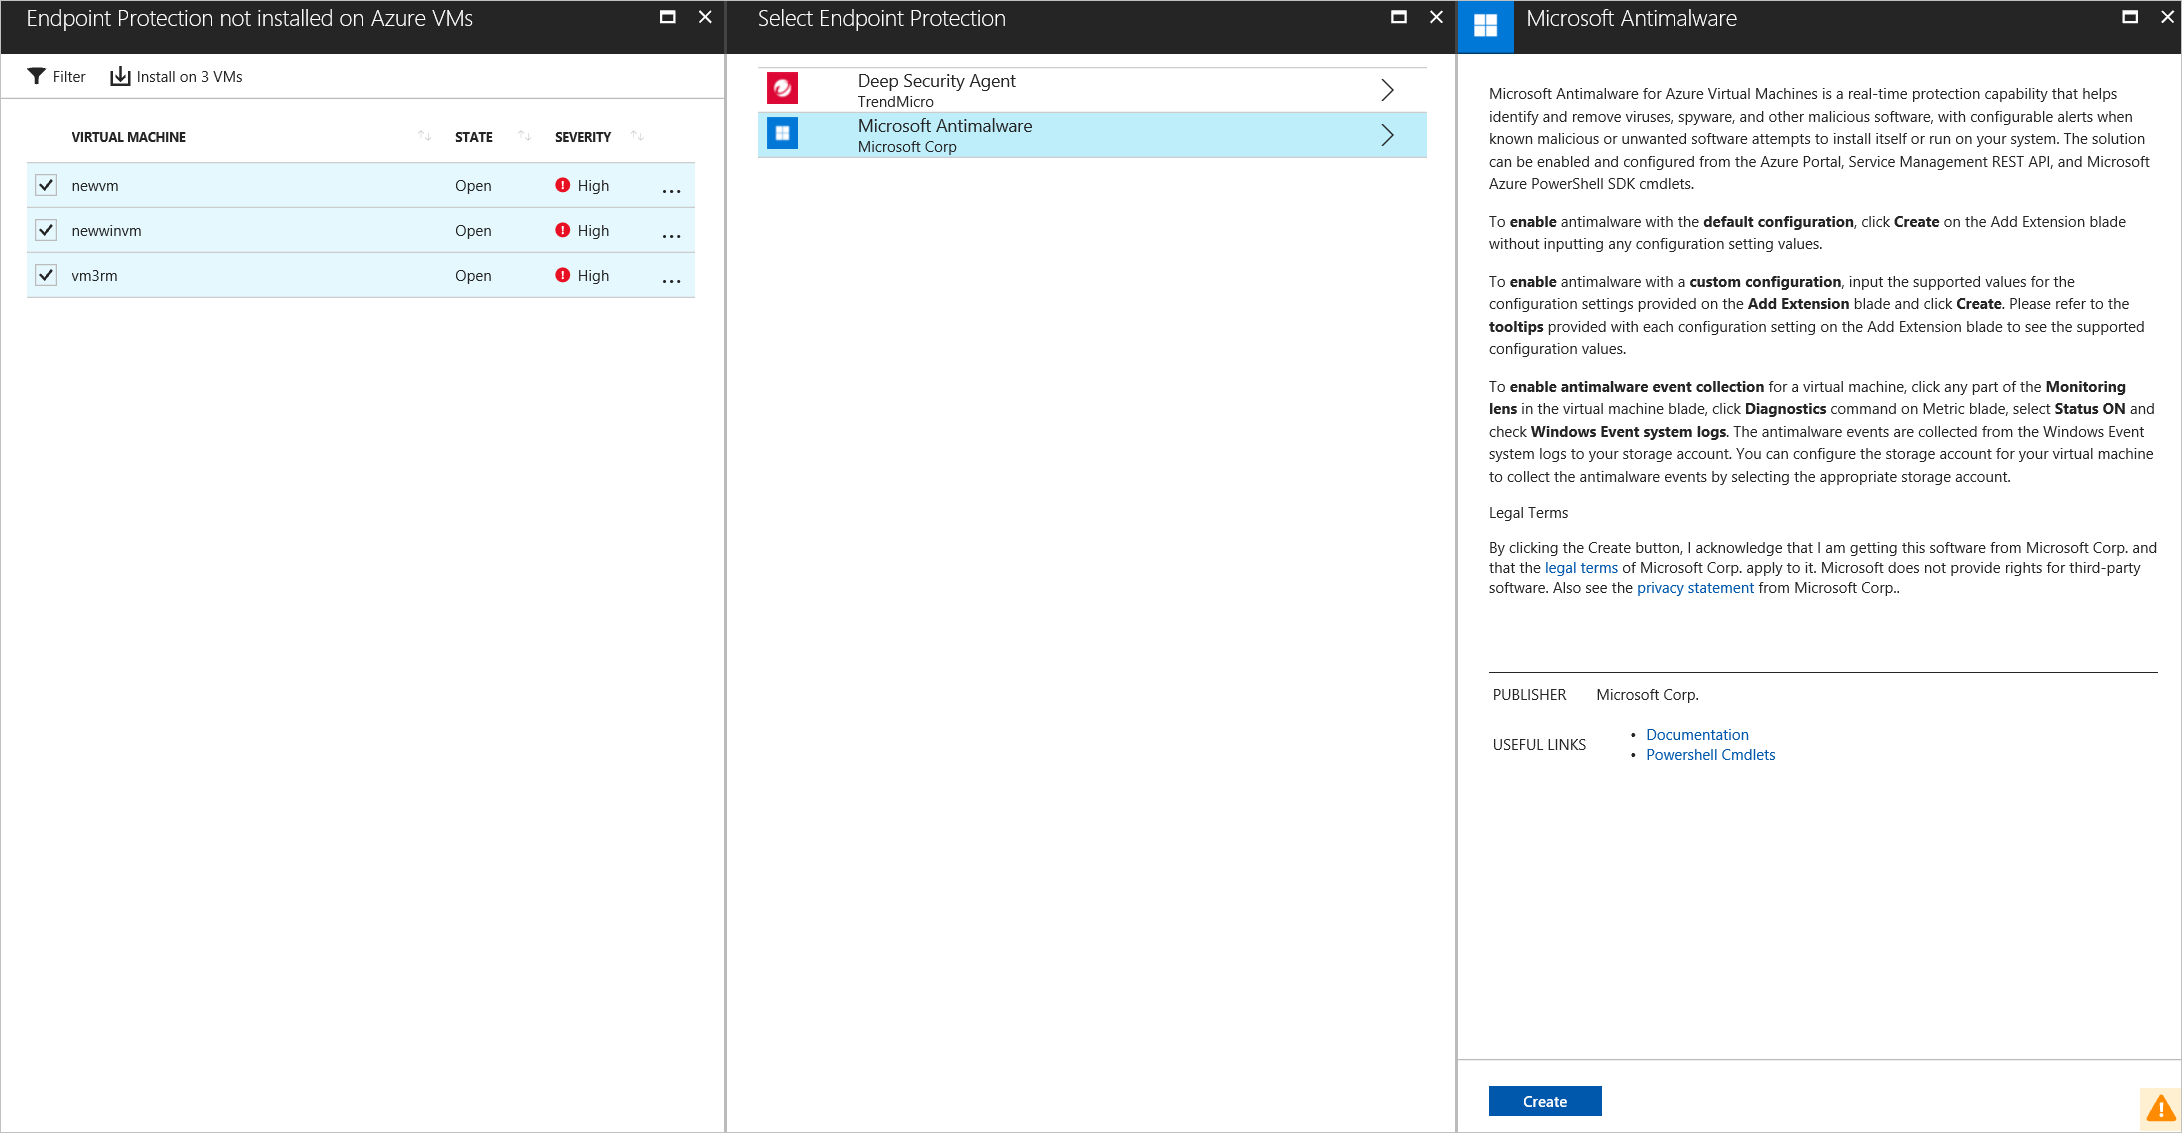 Manage endpoint protection issues with Azure Security Center